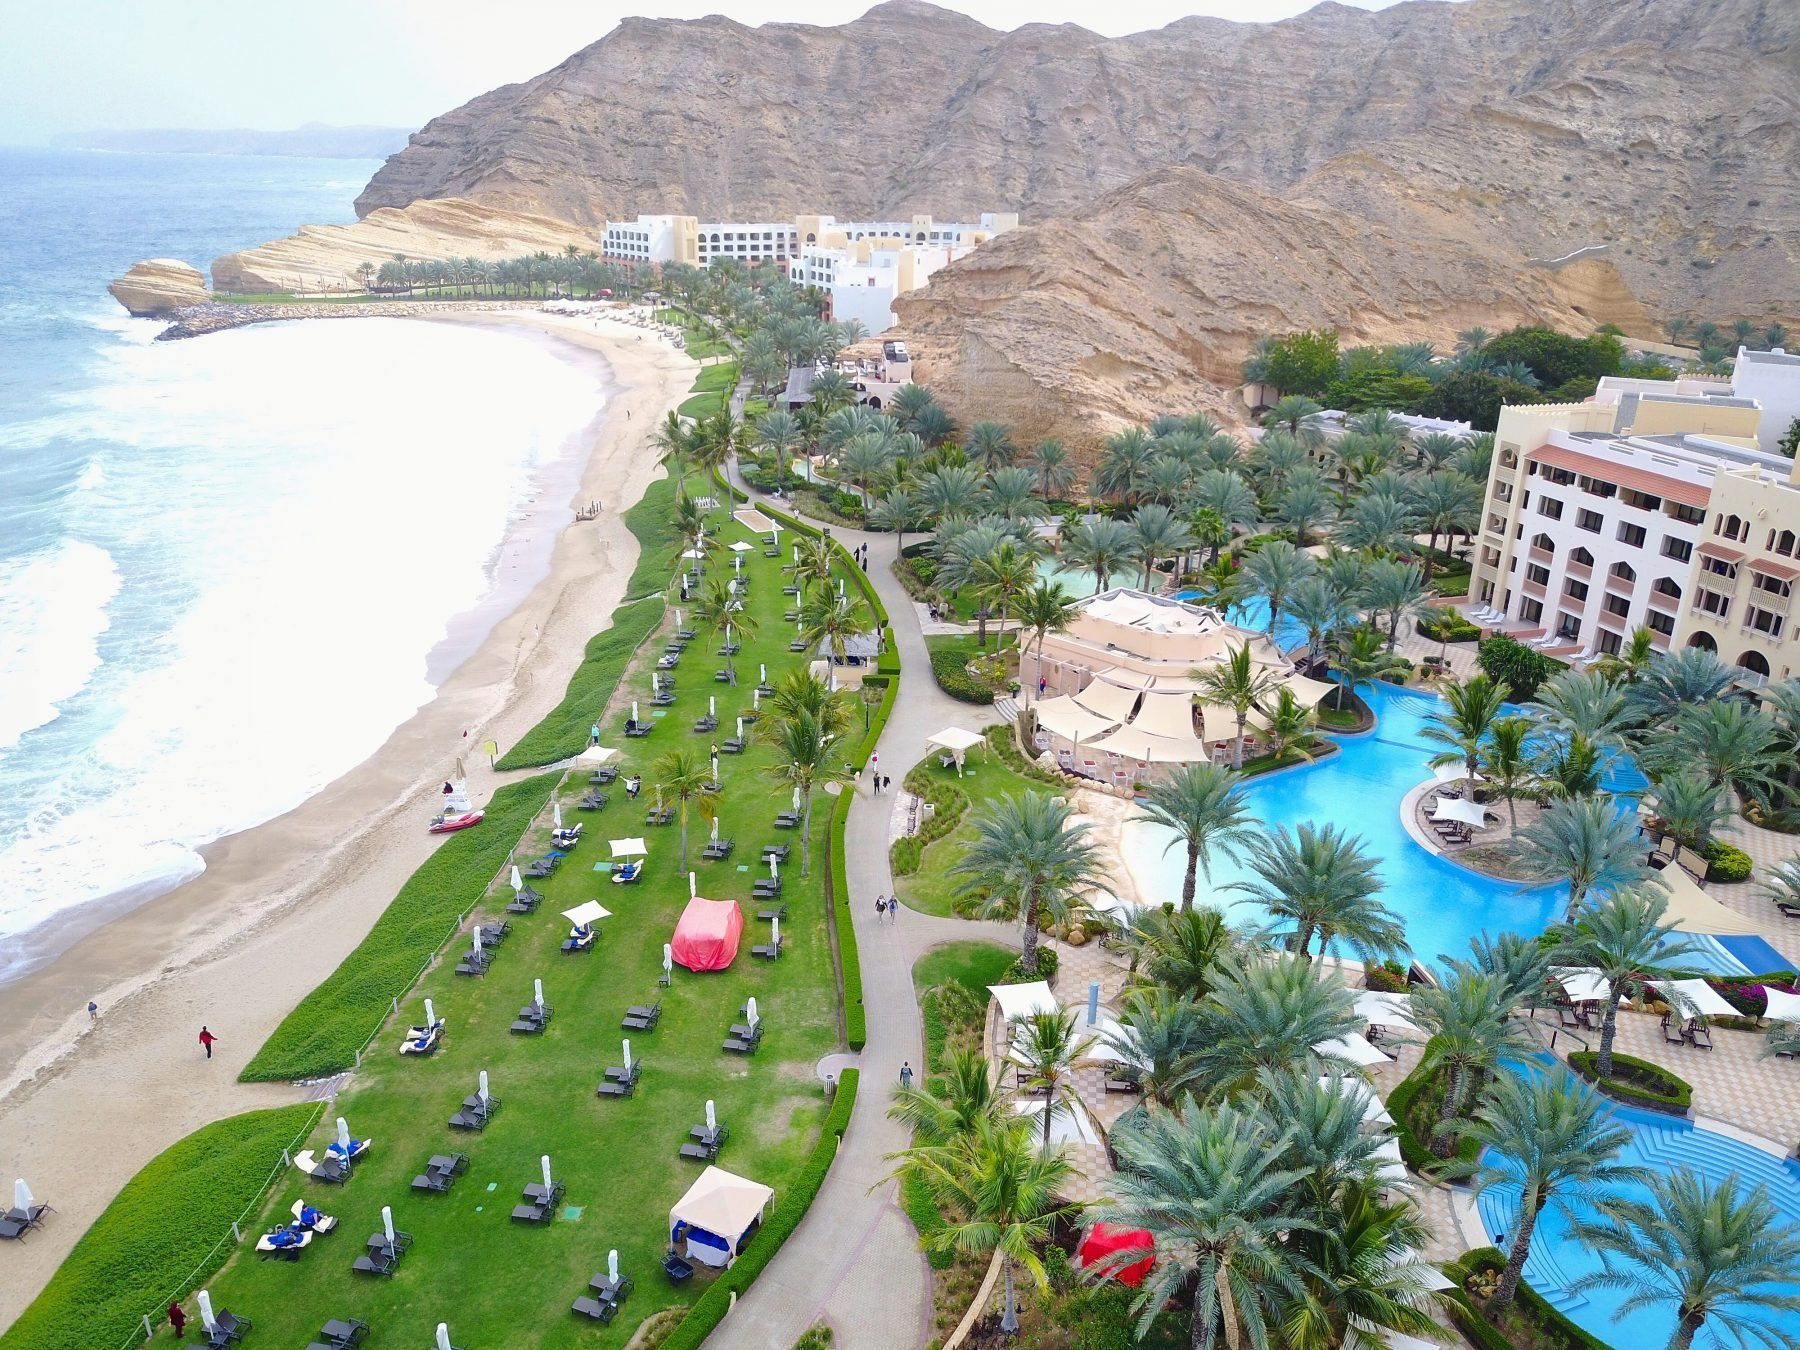 Living It Up In Muscat Oman Pure Luxury At The Shangri La Barr Al Jissah Resort Spa Hotels And Resorts Resort Spa Shangri La Hotel